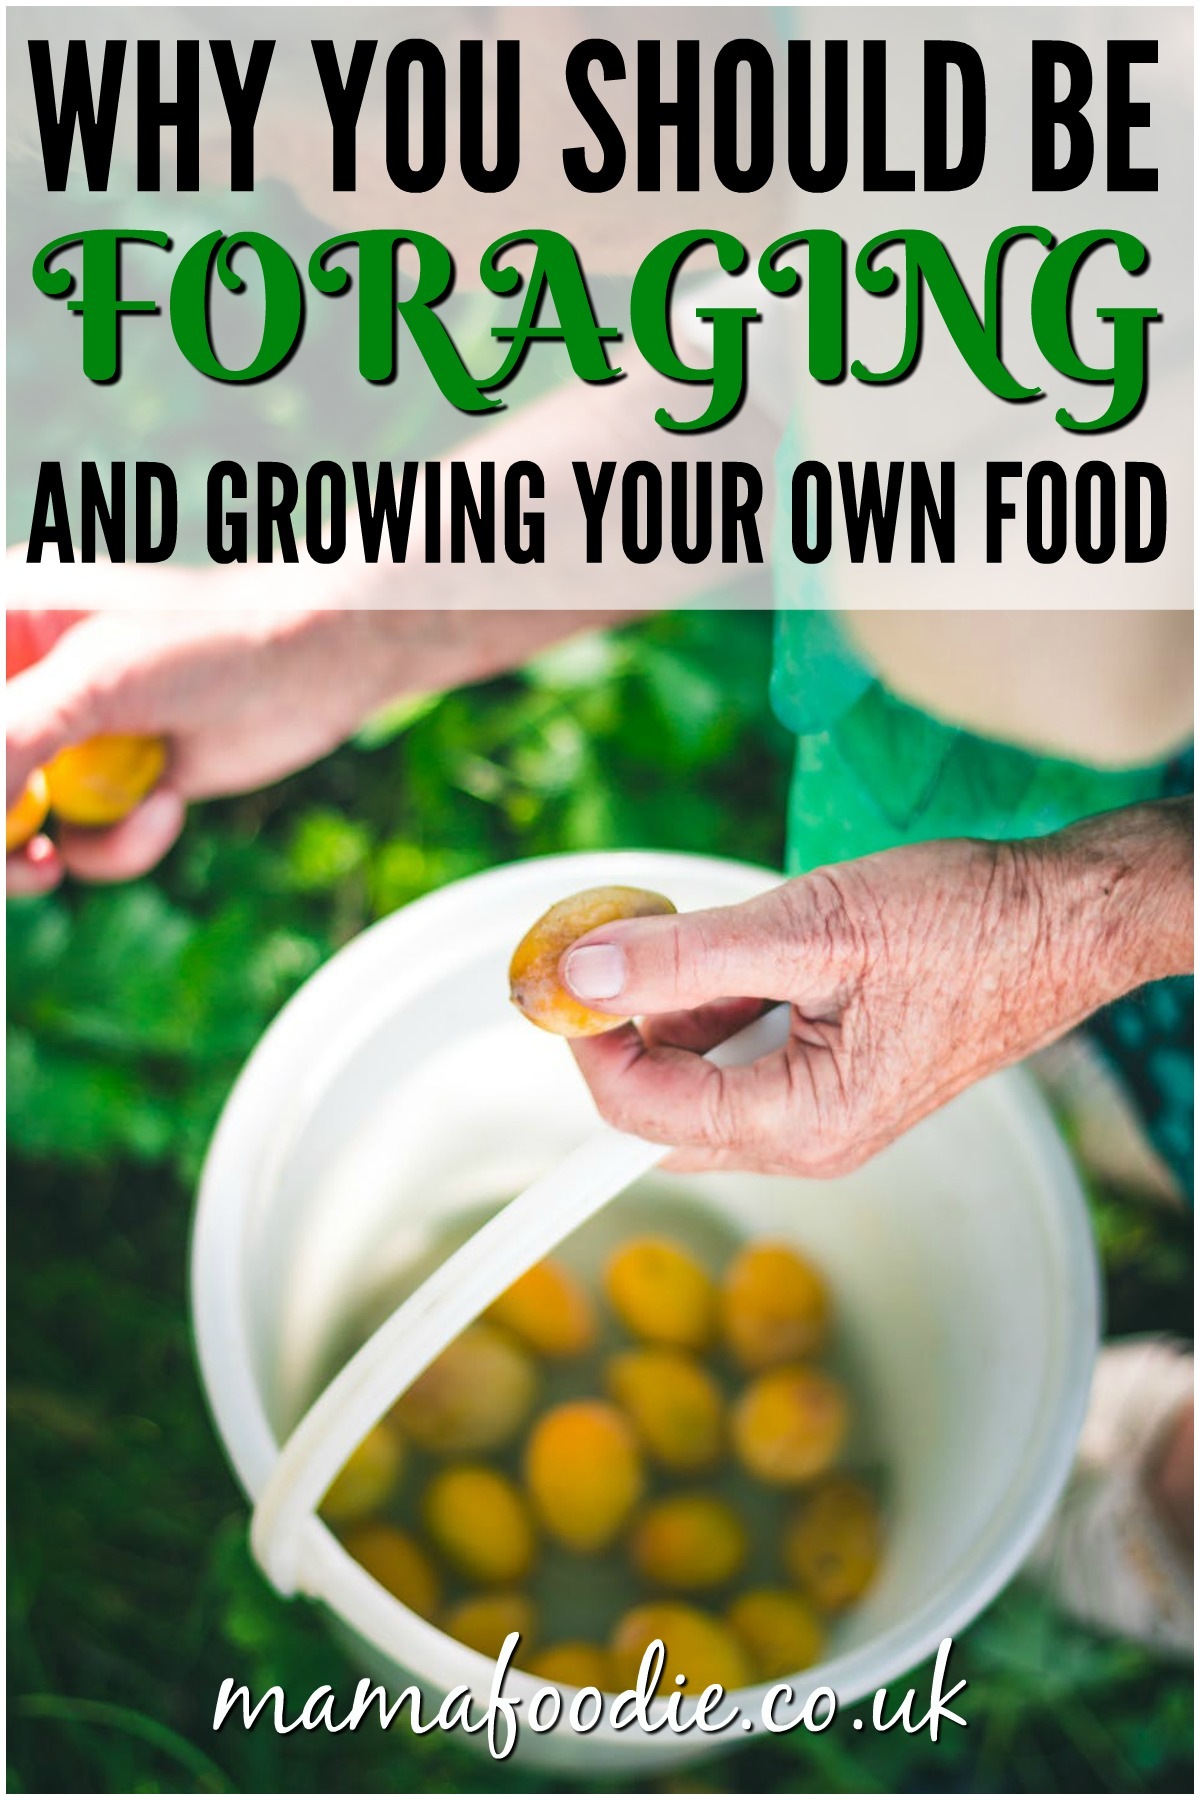 Why You Should be Foraging & Growing Your Own Food